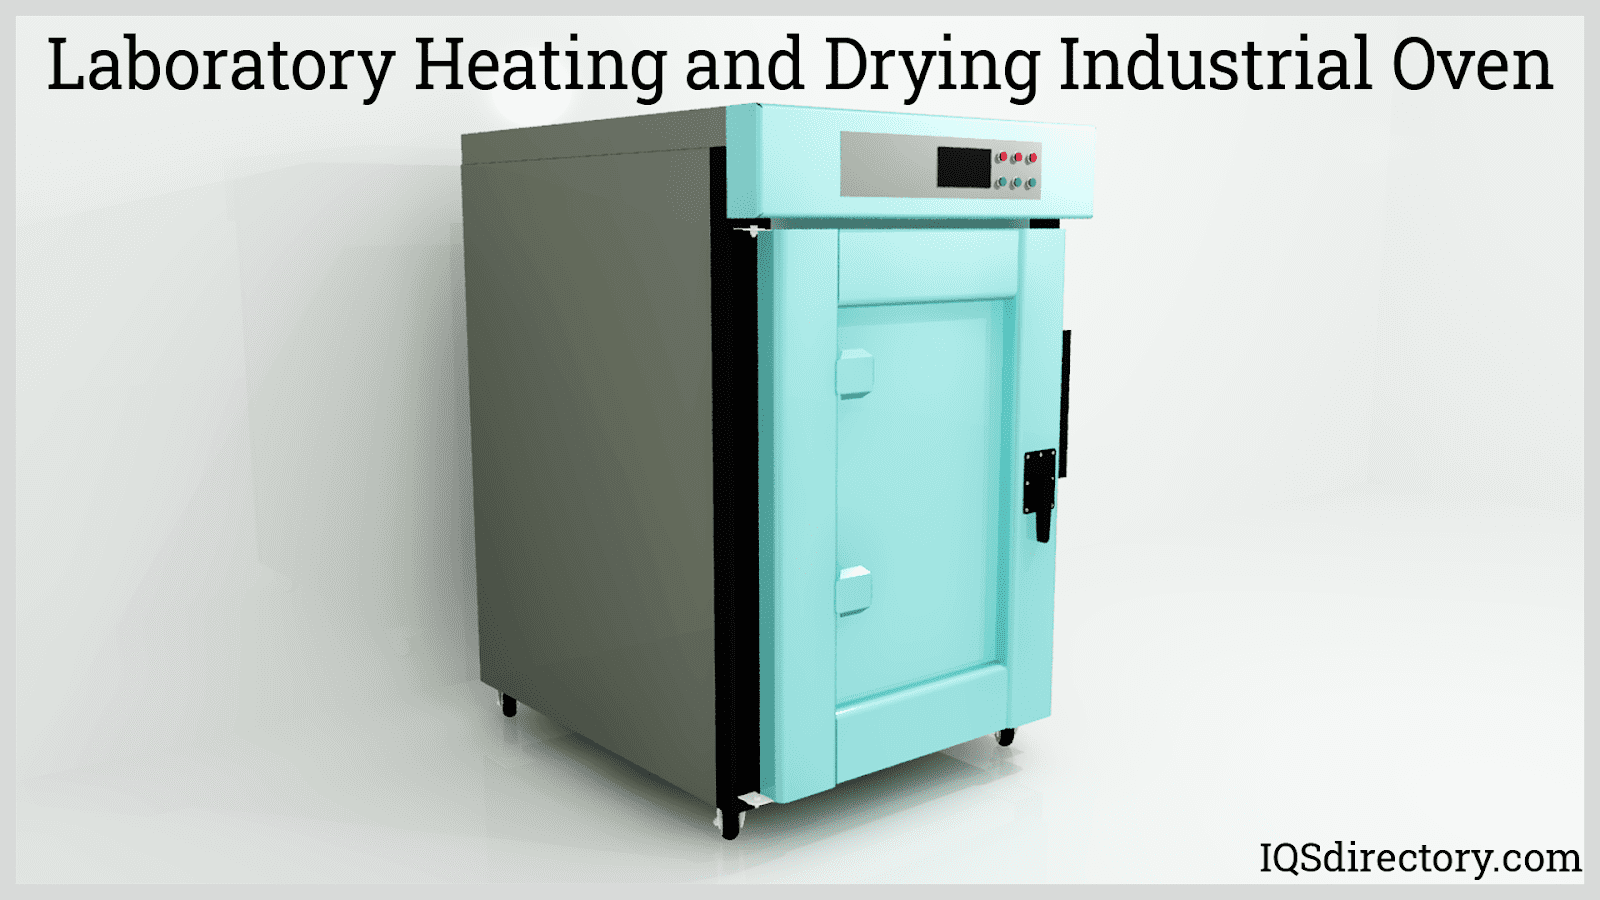 Laboratory Heating and Drying Industrial Oven